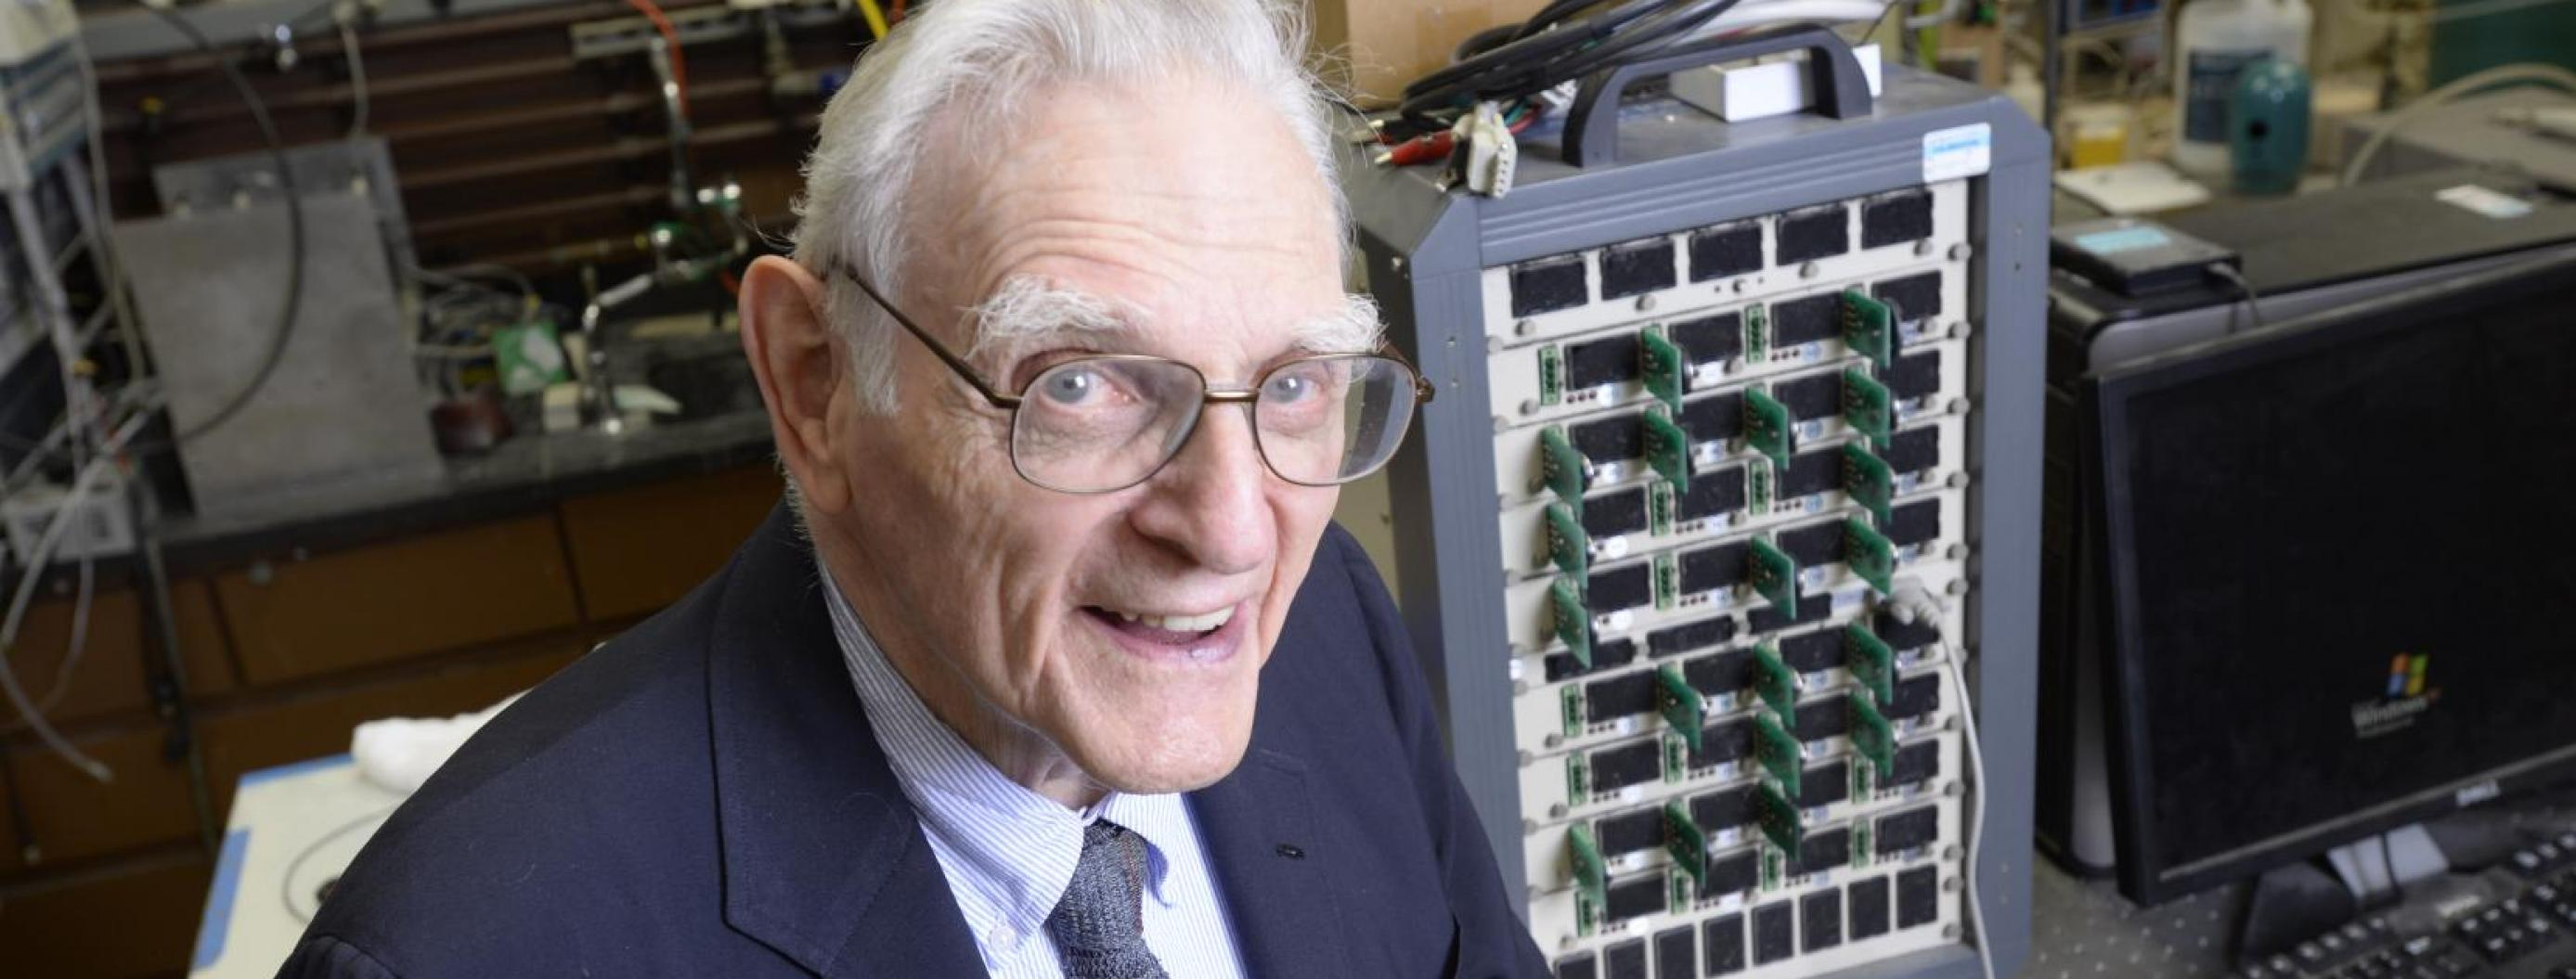 Think Like a 94-Year-Old if You Want to Be a Genius